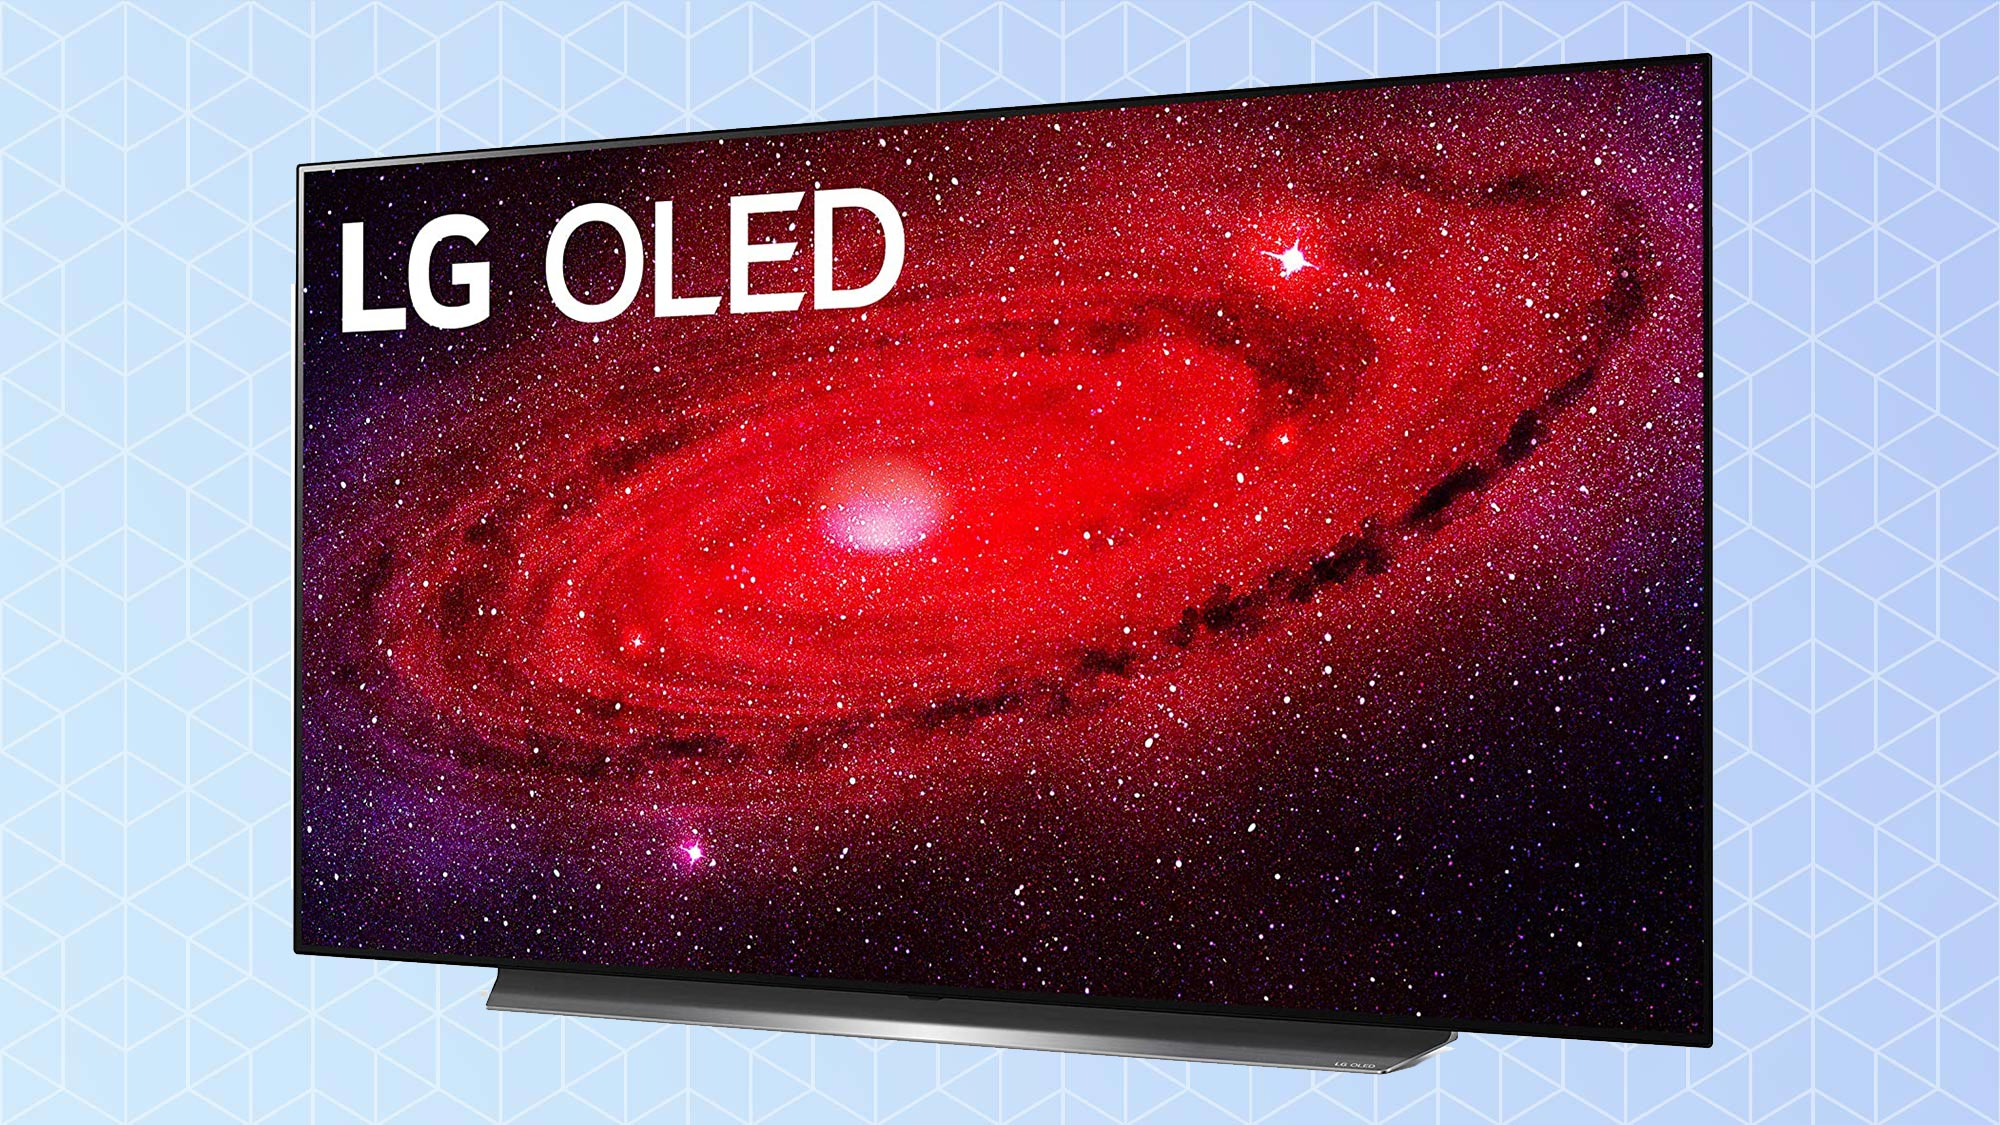 Best OLED TVs: LG CX OLED review